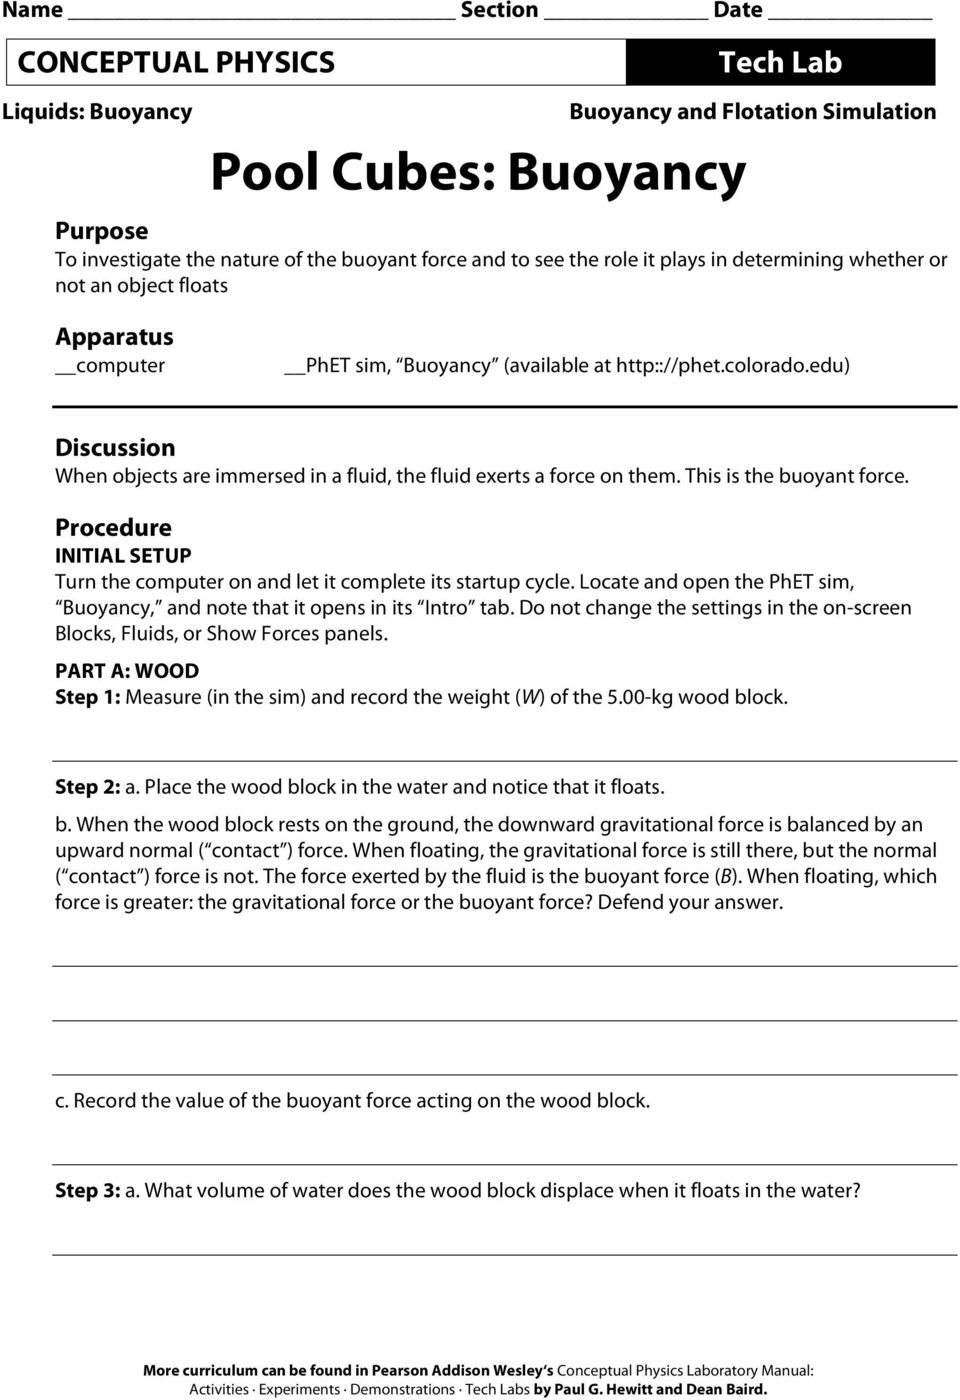 worksheet Buoyancy Worksheet pool cubes buoyancy pdf edu discussion when objects are immersed in a fluid the exerts force